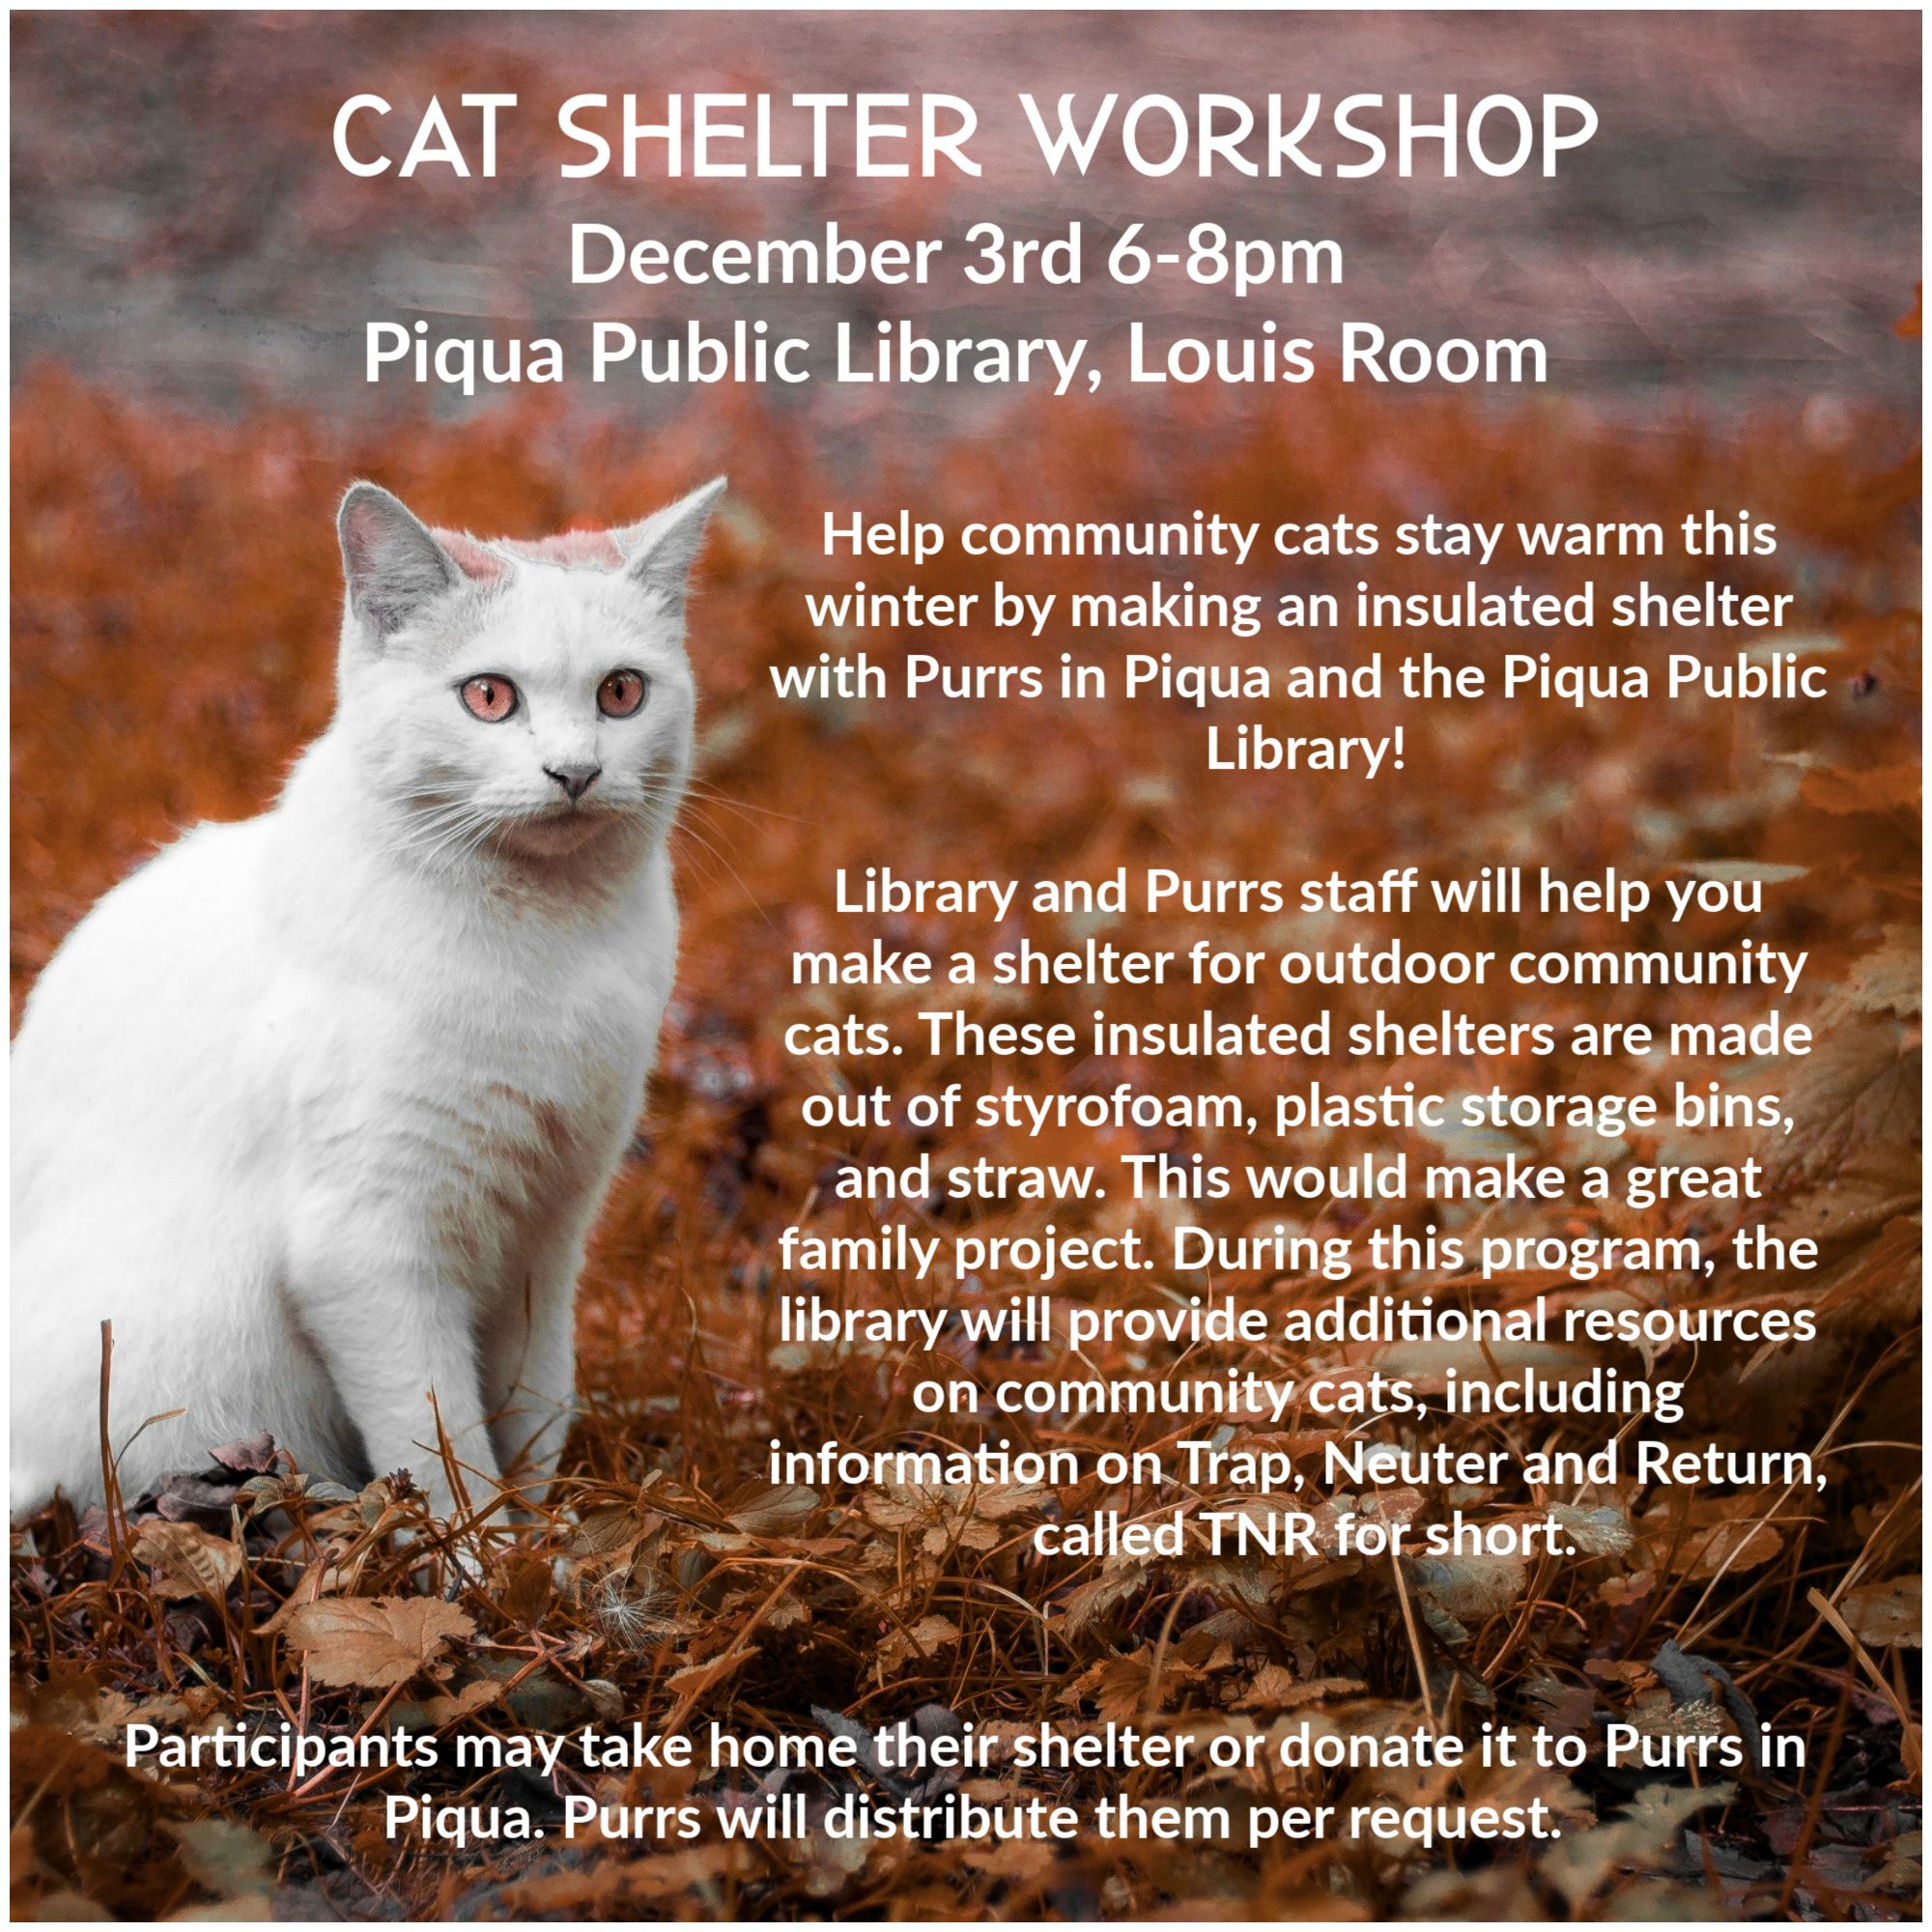 Help community cats stay warm this winter by making an